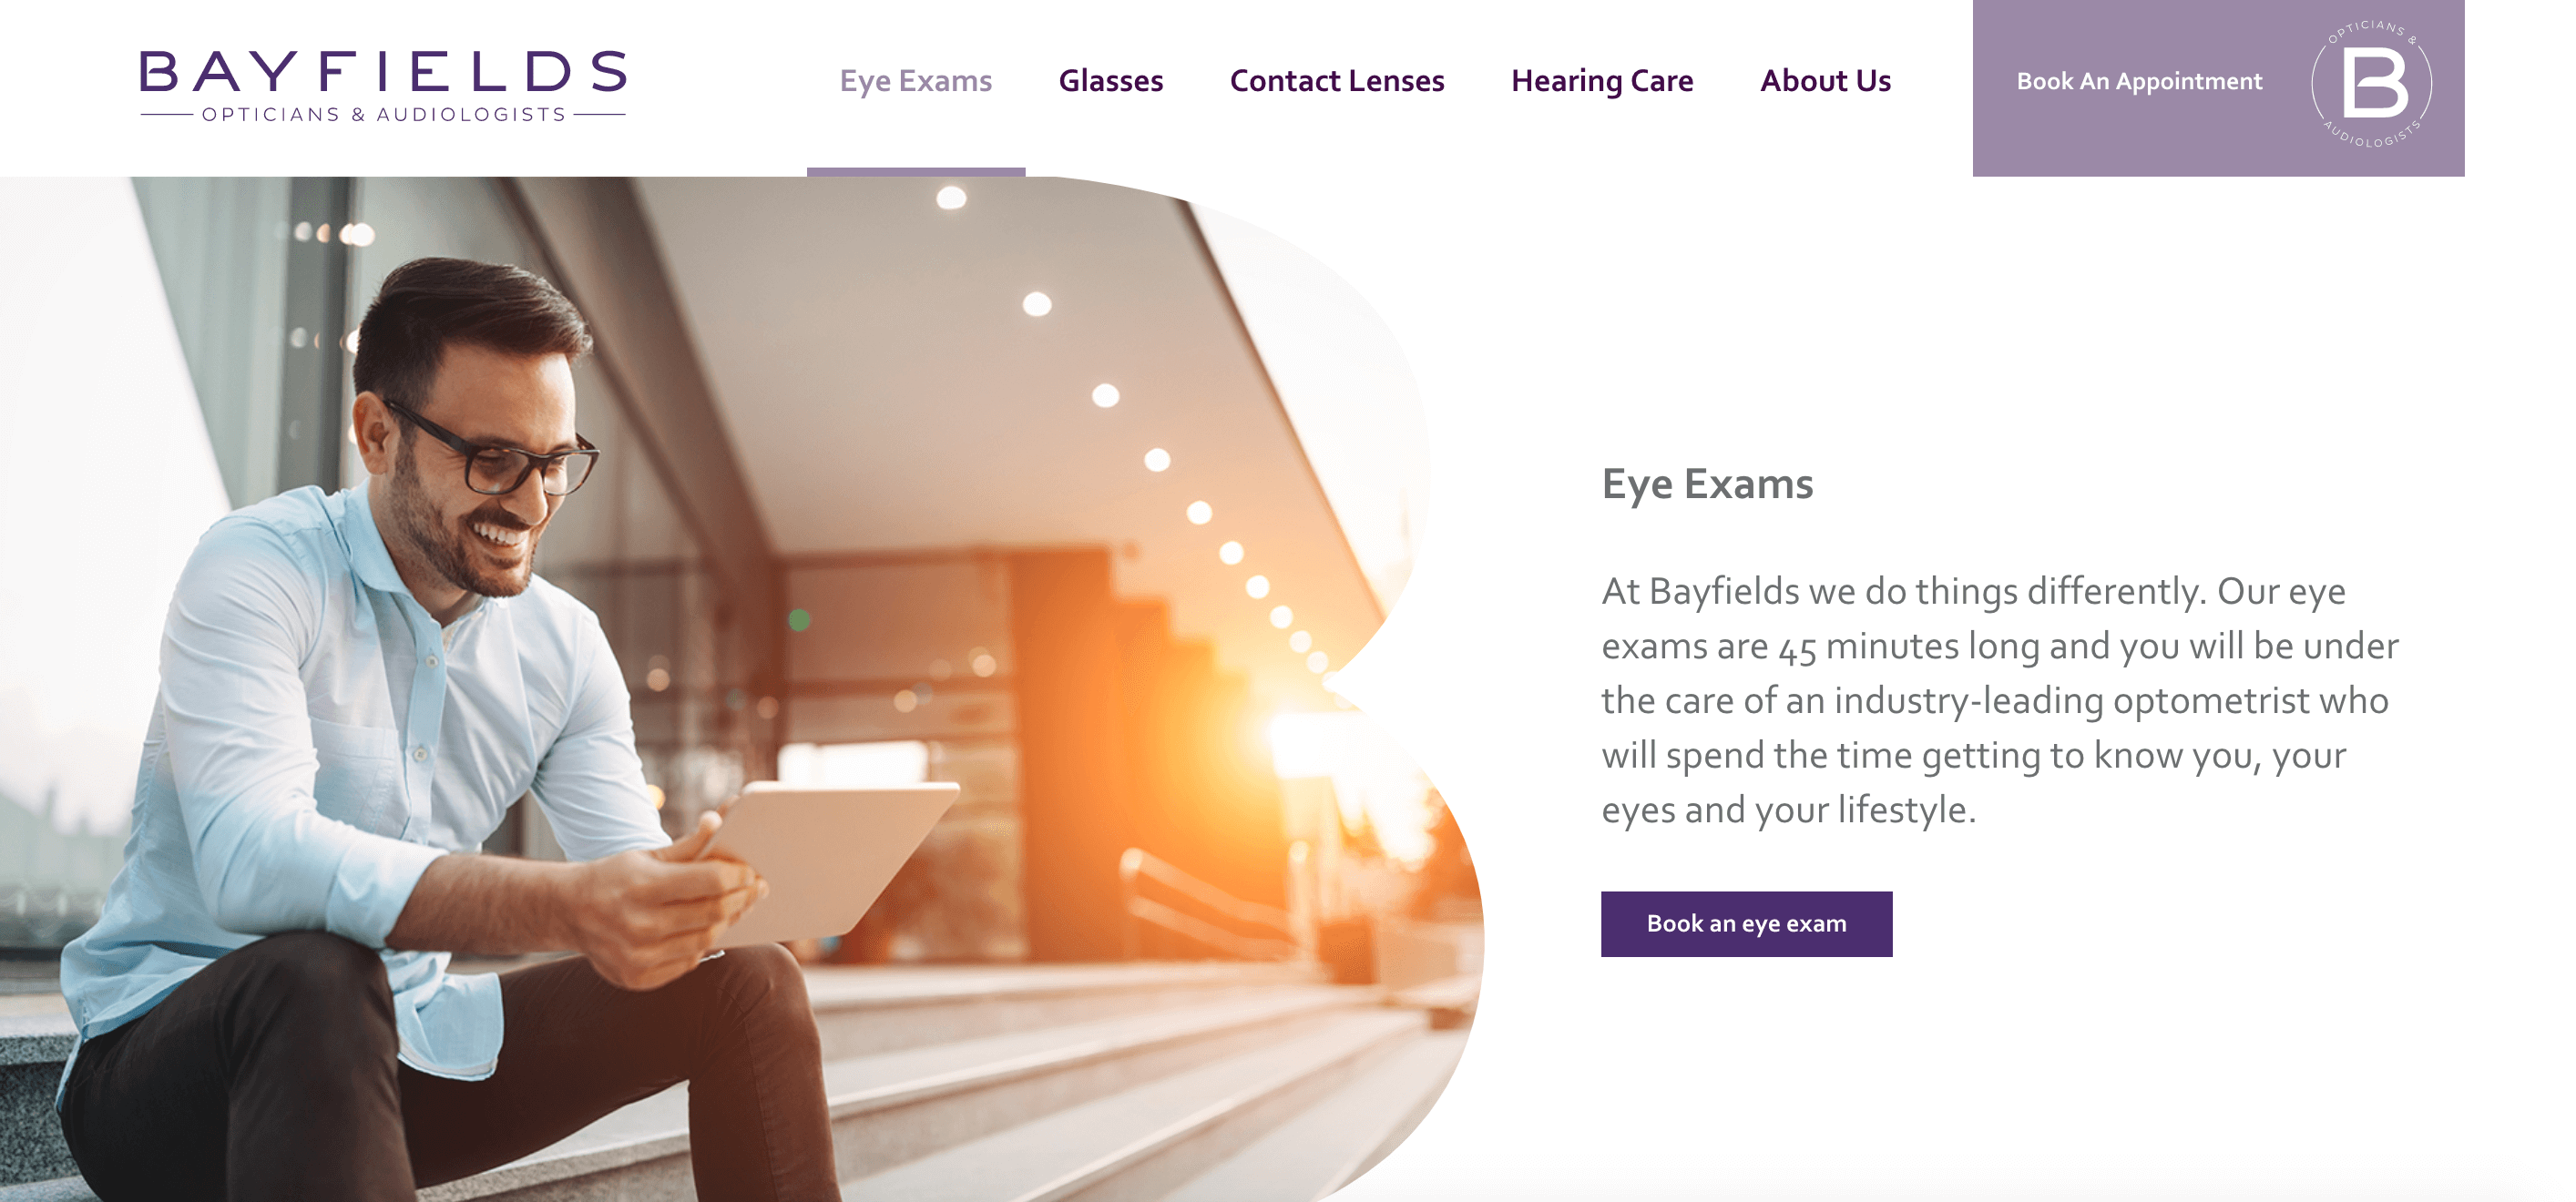 Bayfield Opticians Landing Page Example